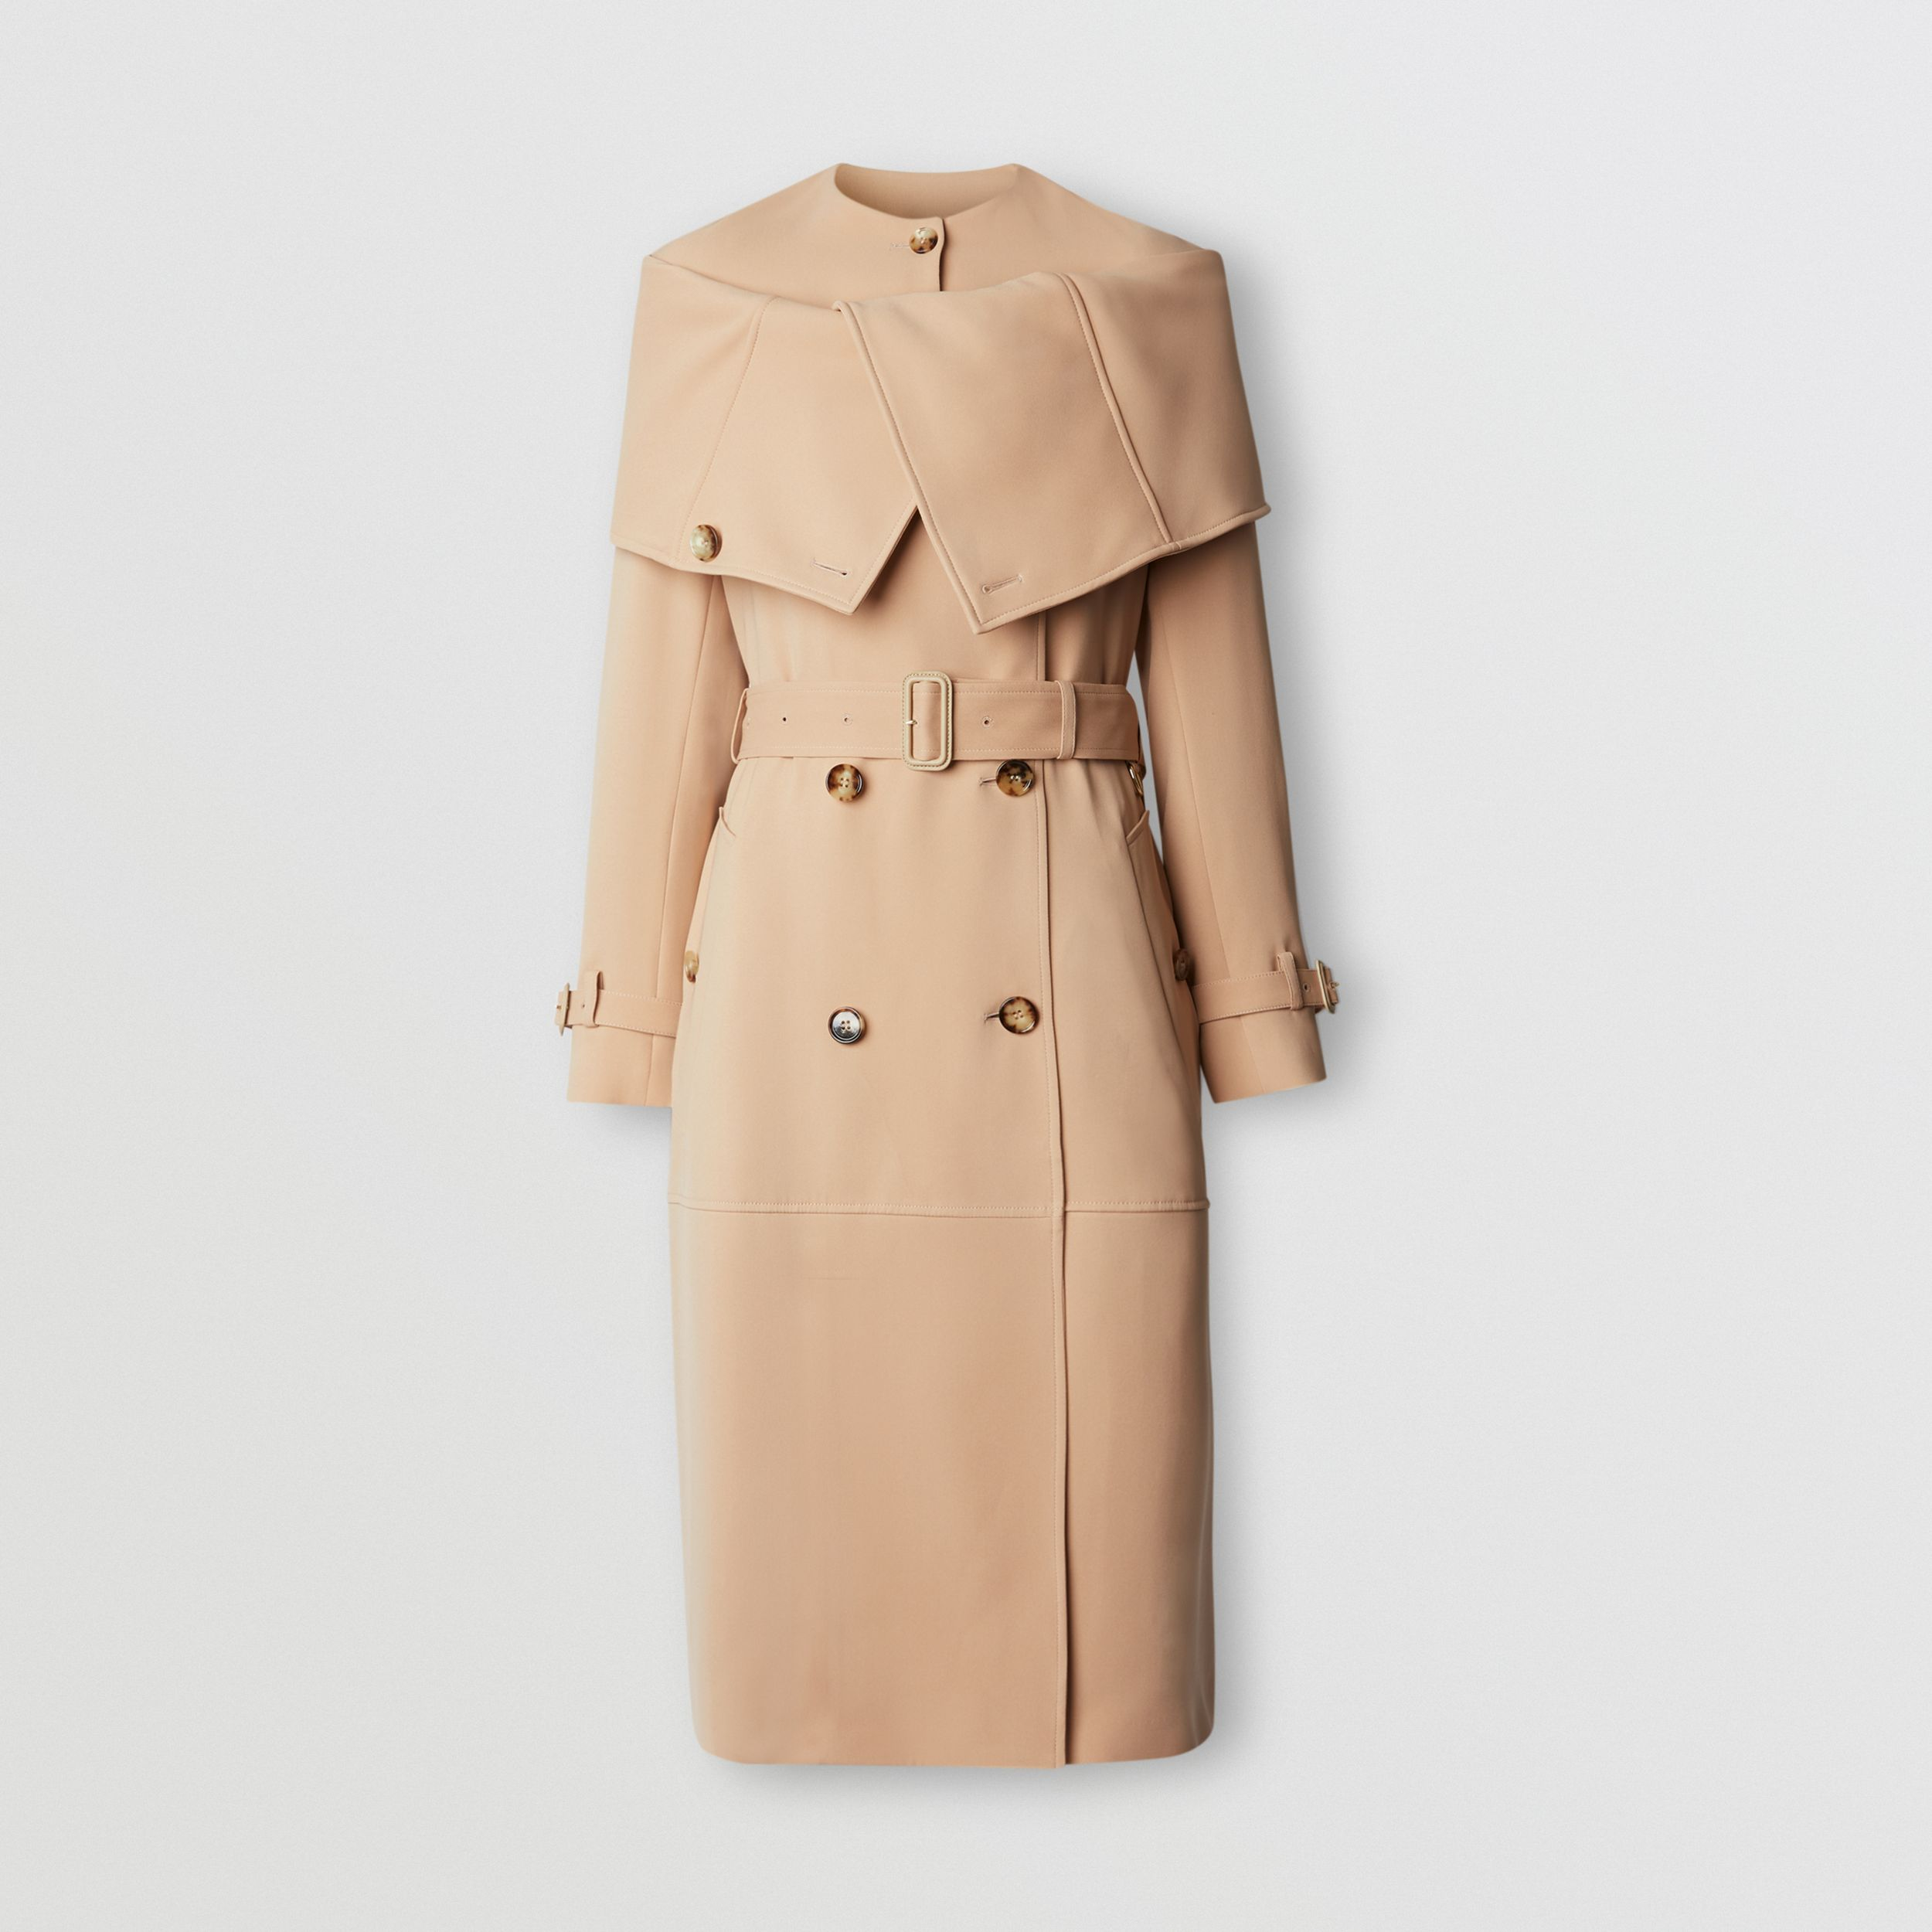 Silk Cady Reconstructed Trench Coat in Dark Biscuit - Women | Burberry Canada - 4